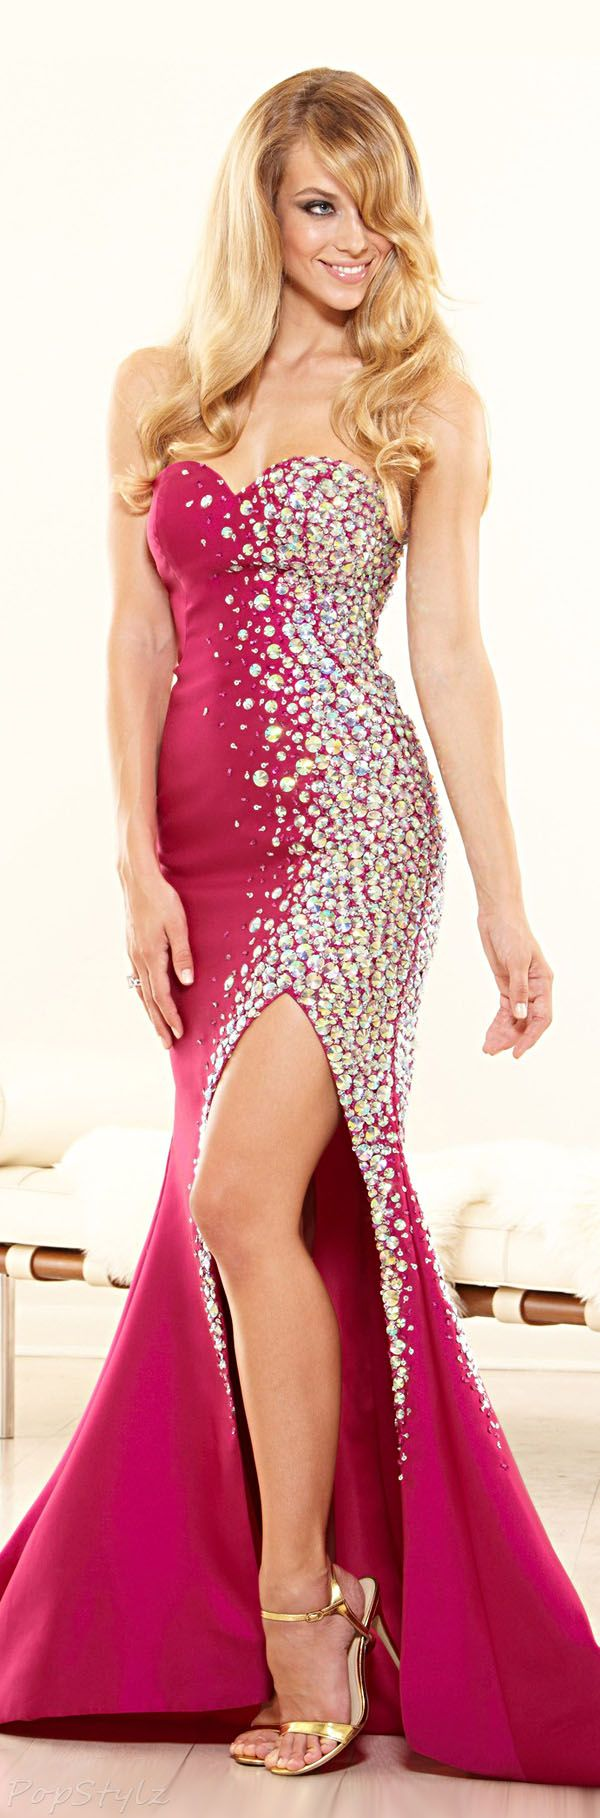 Terani Couture Evening Gown jaglady | Gorgeous dresses and shoes ...